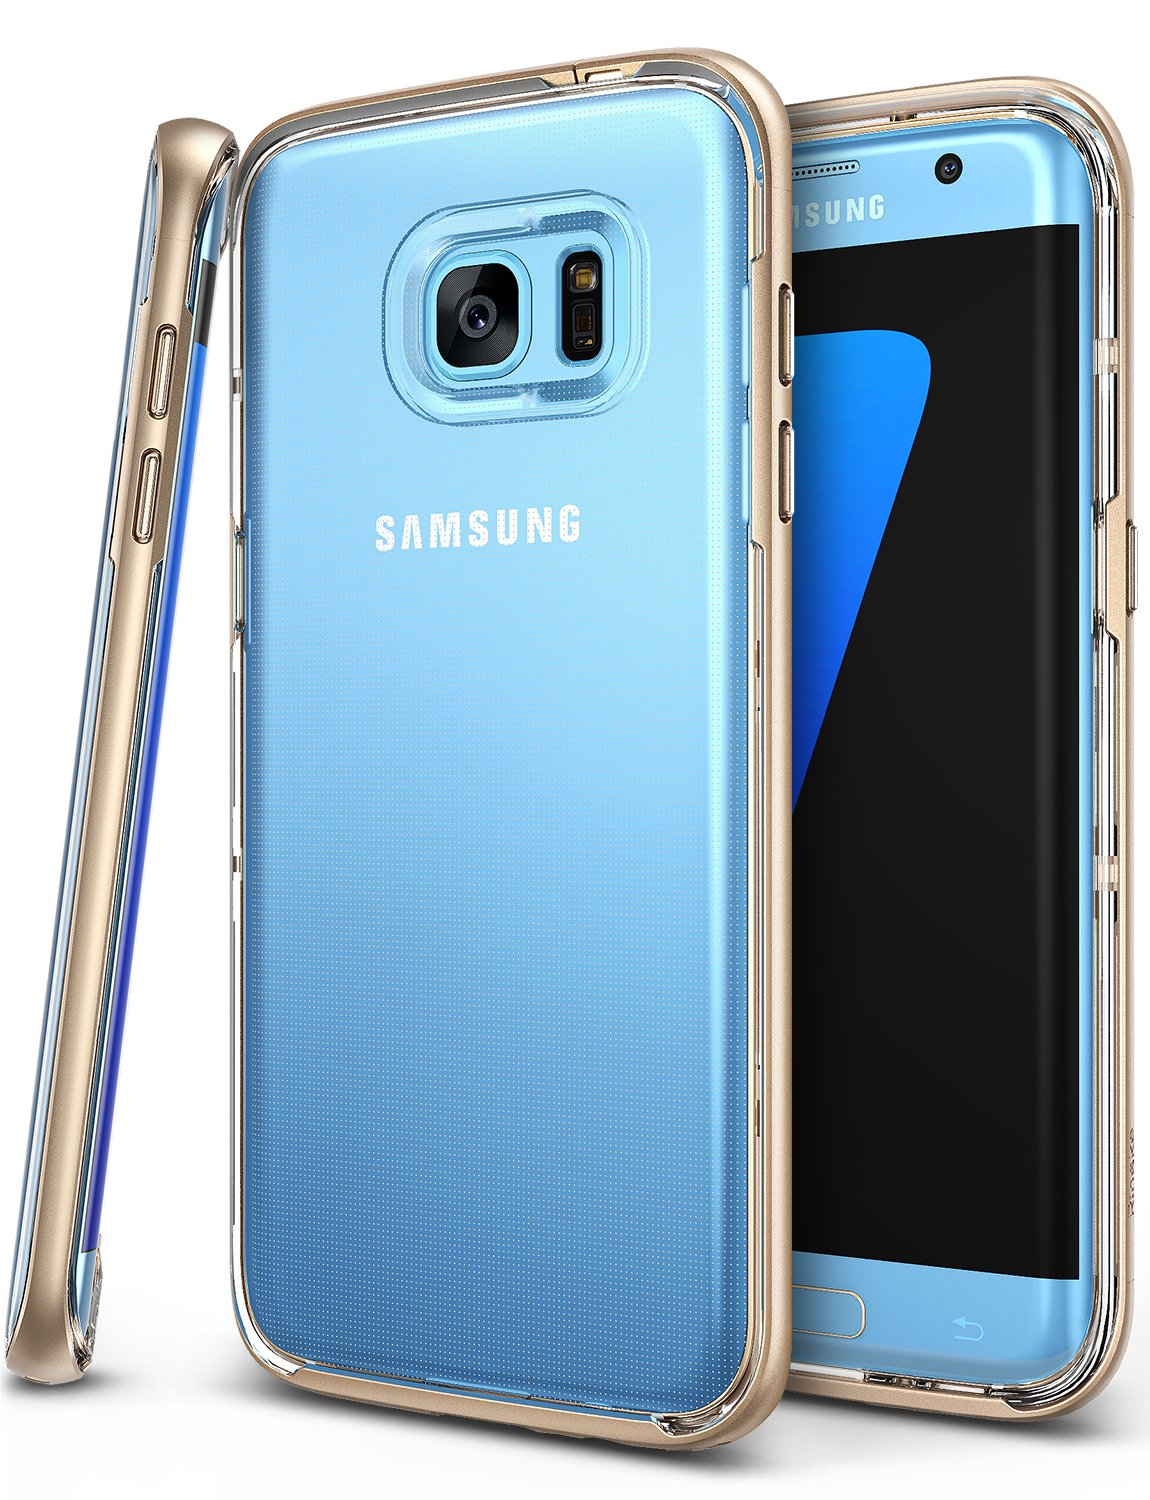 Galaxy S7 Edge Case, Ringke [Frame] Ultimate DualLayer Reinforced Bumper [Royal Gold] Naturally Contour Streamlined Fit Shell Patented Specialized Interlocking Clasp Advanced Structure Defensive Cover